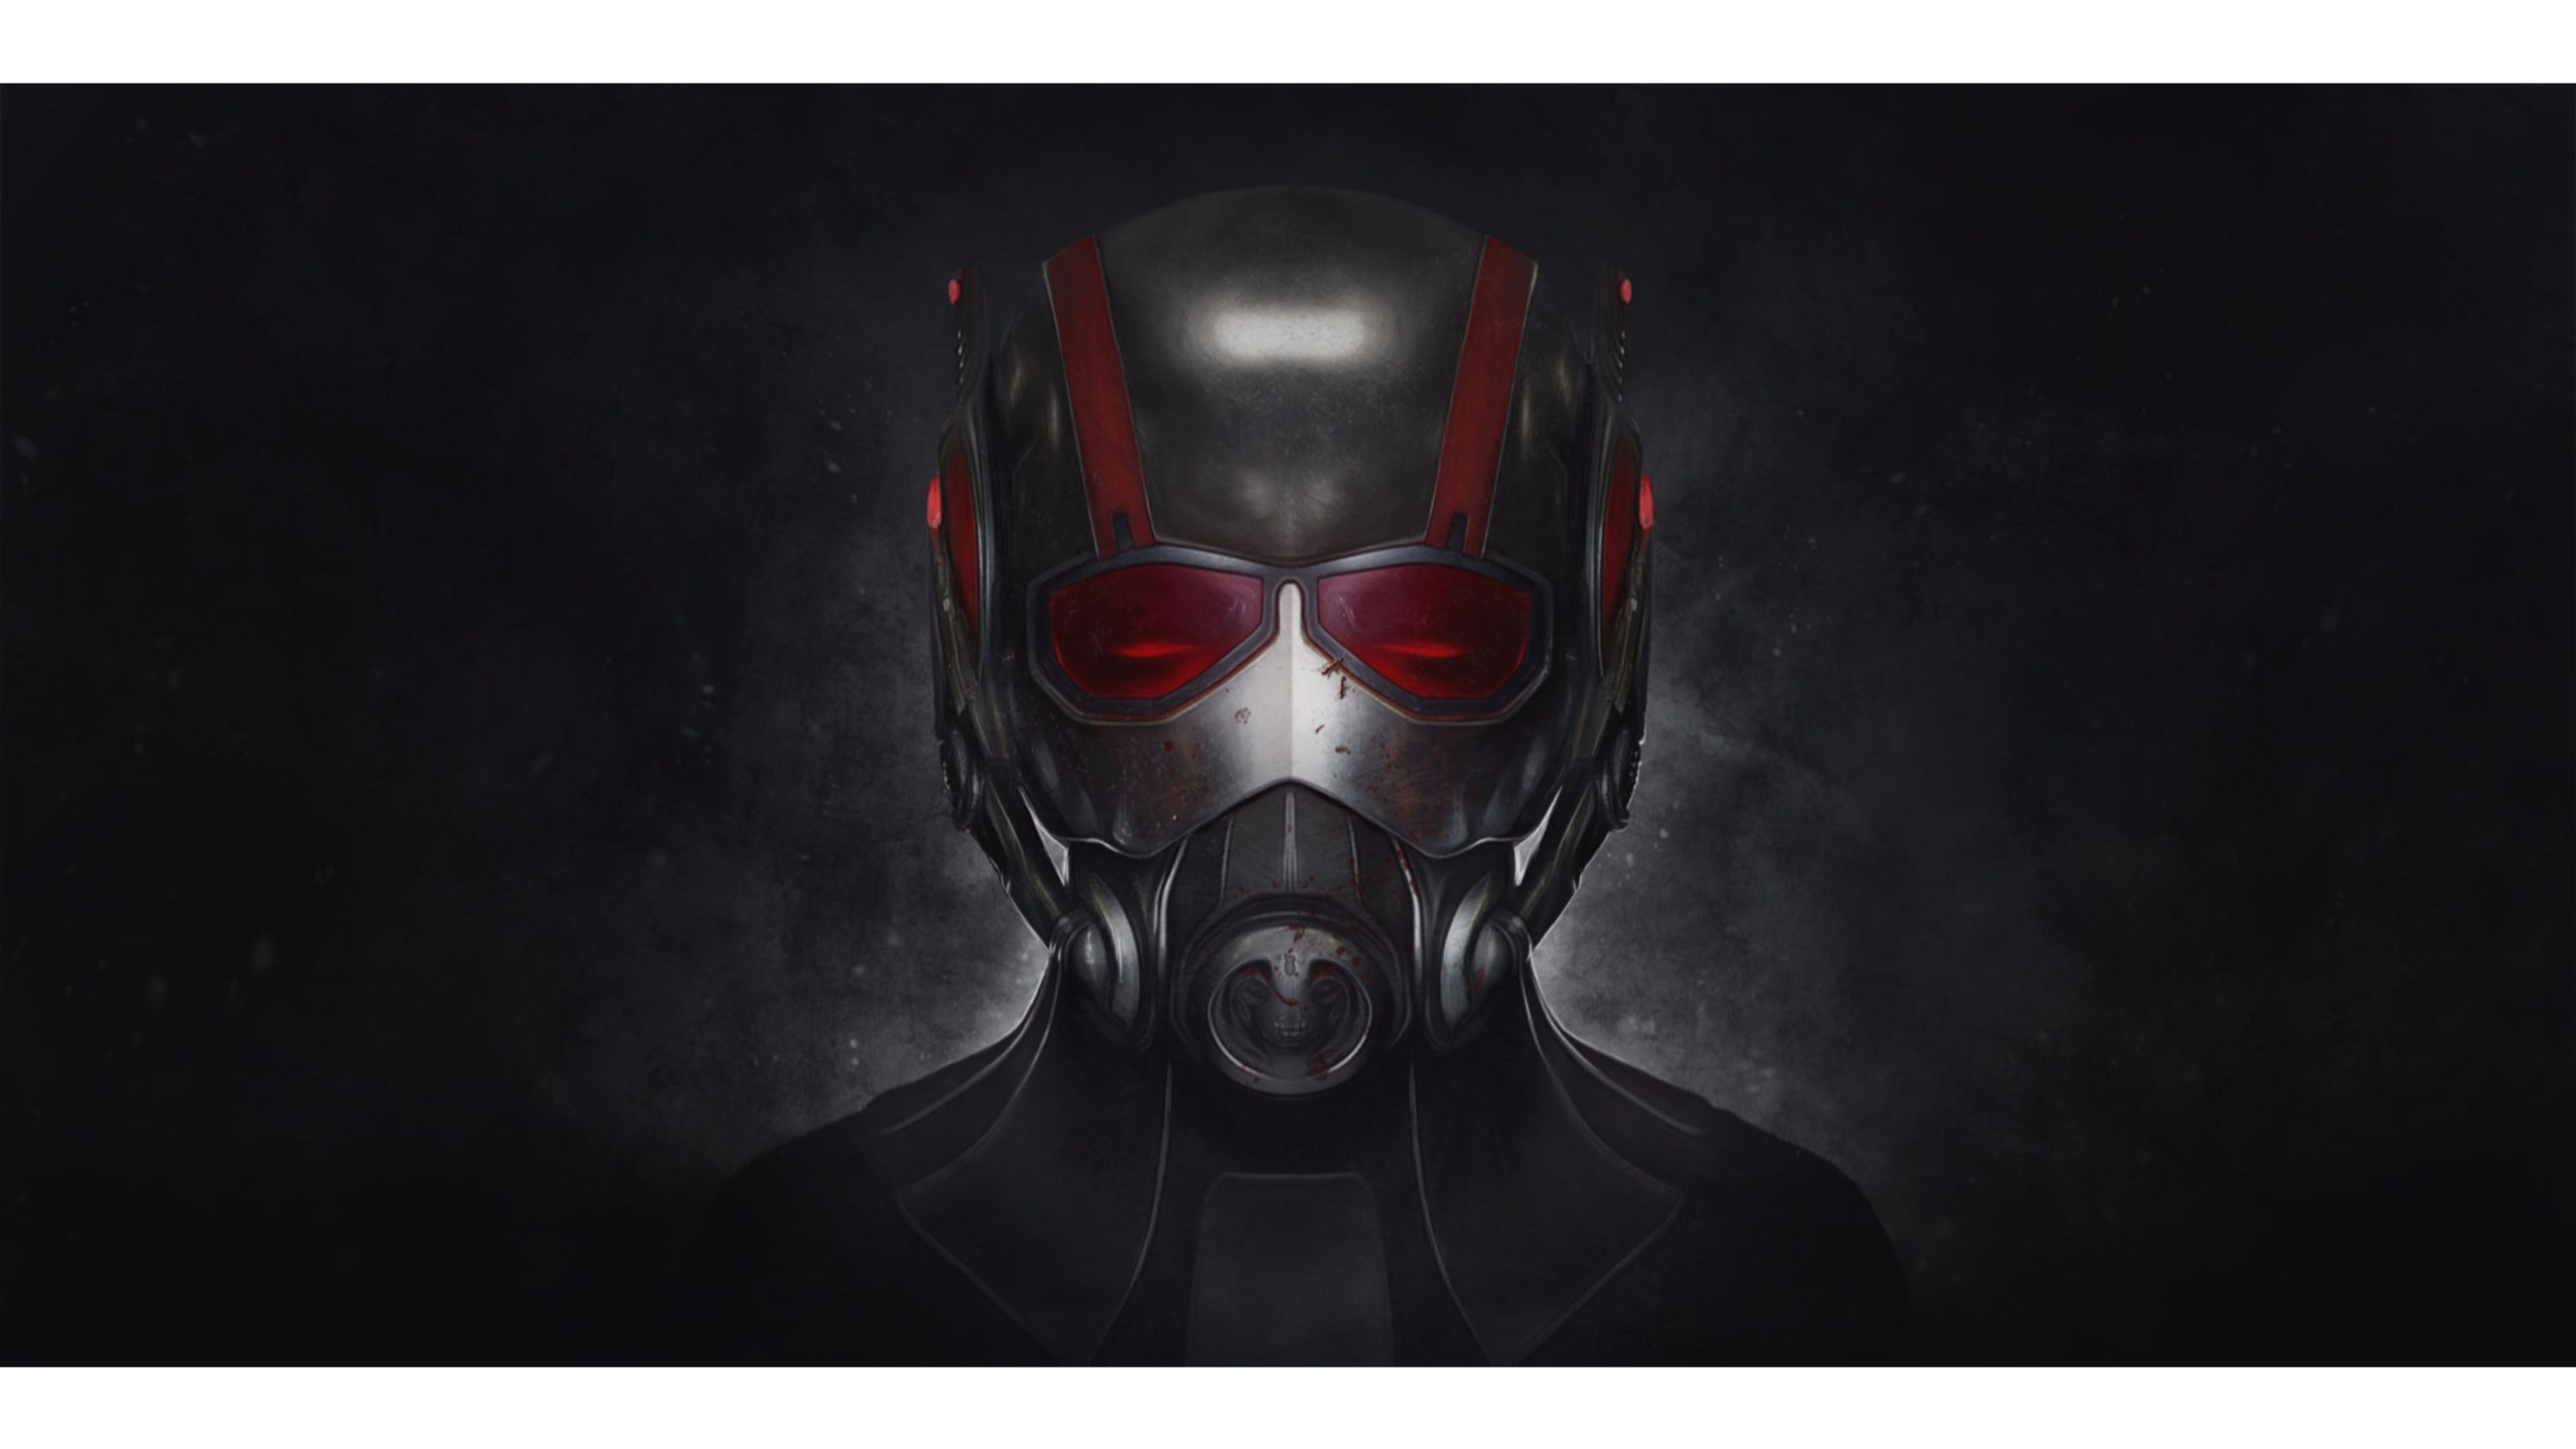 4k Marvel Wallpapers Top Free 4k Marvel Backgrounds Wallpaperaccess